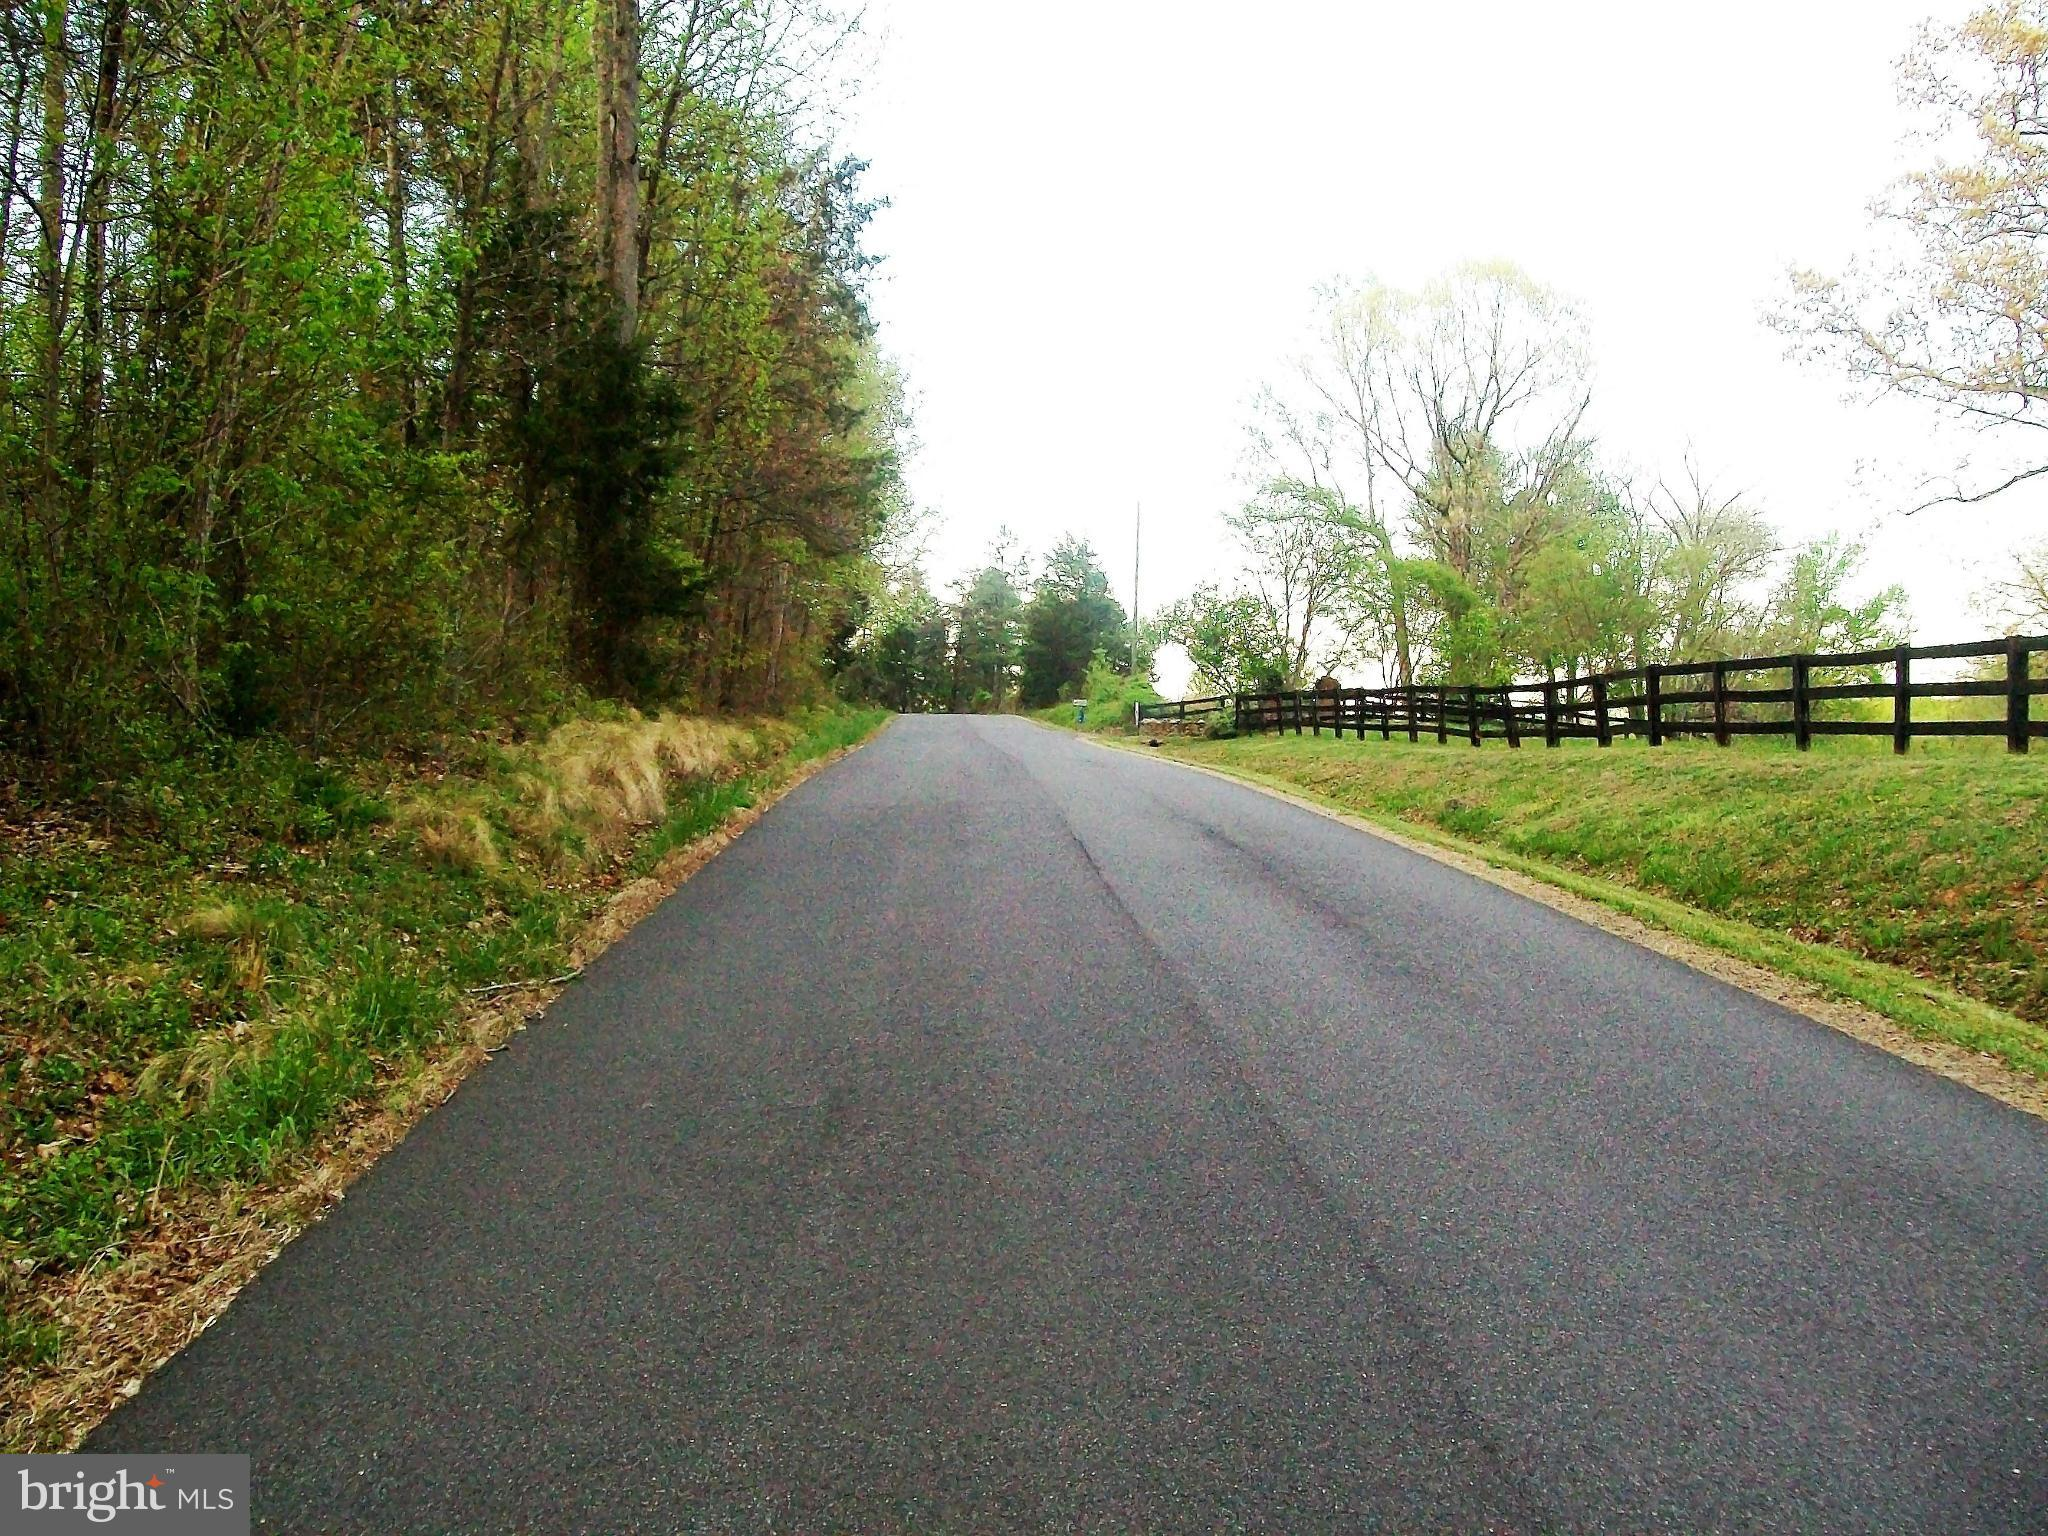 ROUND HILL ROAD, BOSTON, VA 22713